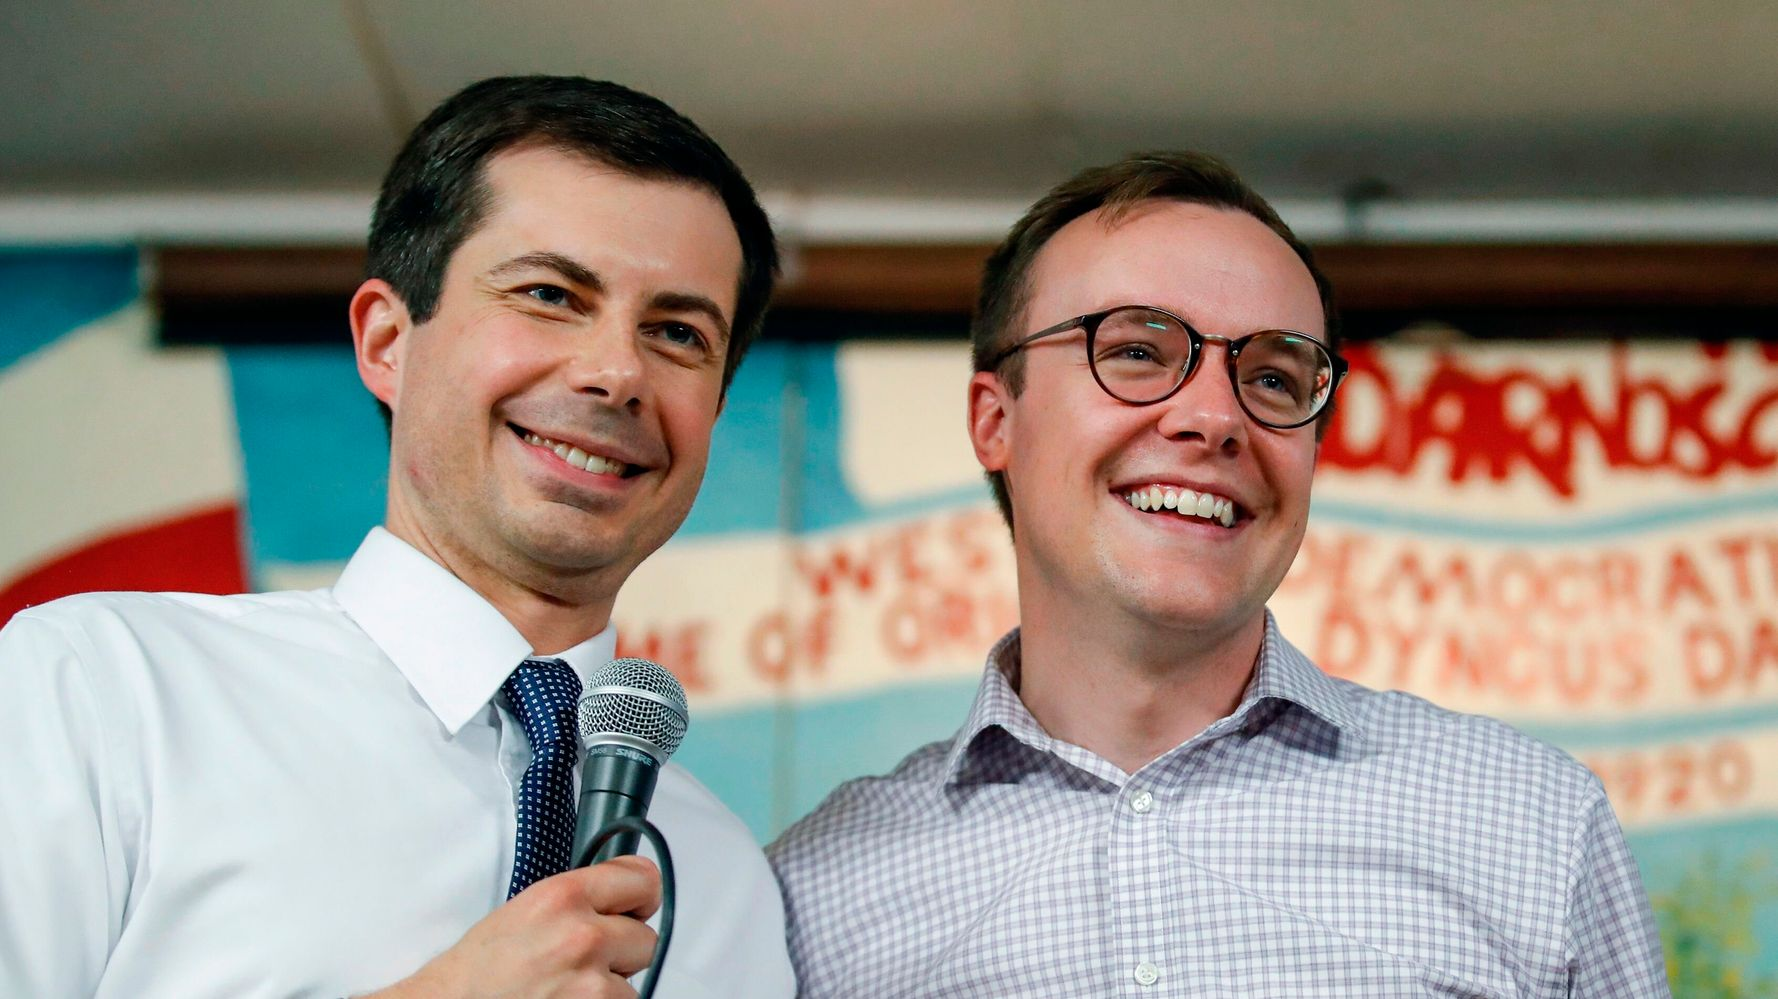 Westlake Legal Group 5db1d4d9210000762934af7a Pete Buttigieg's Skin Care Routine Has Somehow Become A Hot-Button Issue